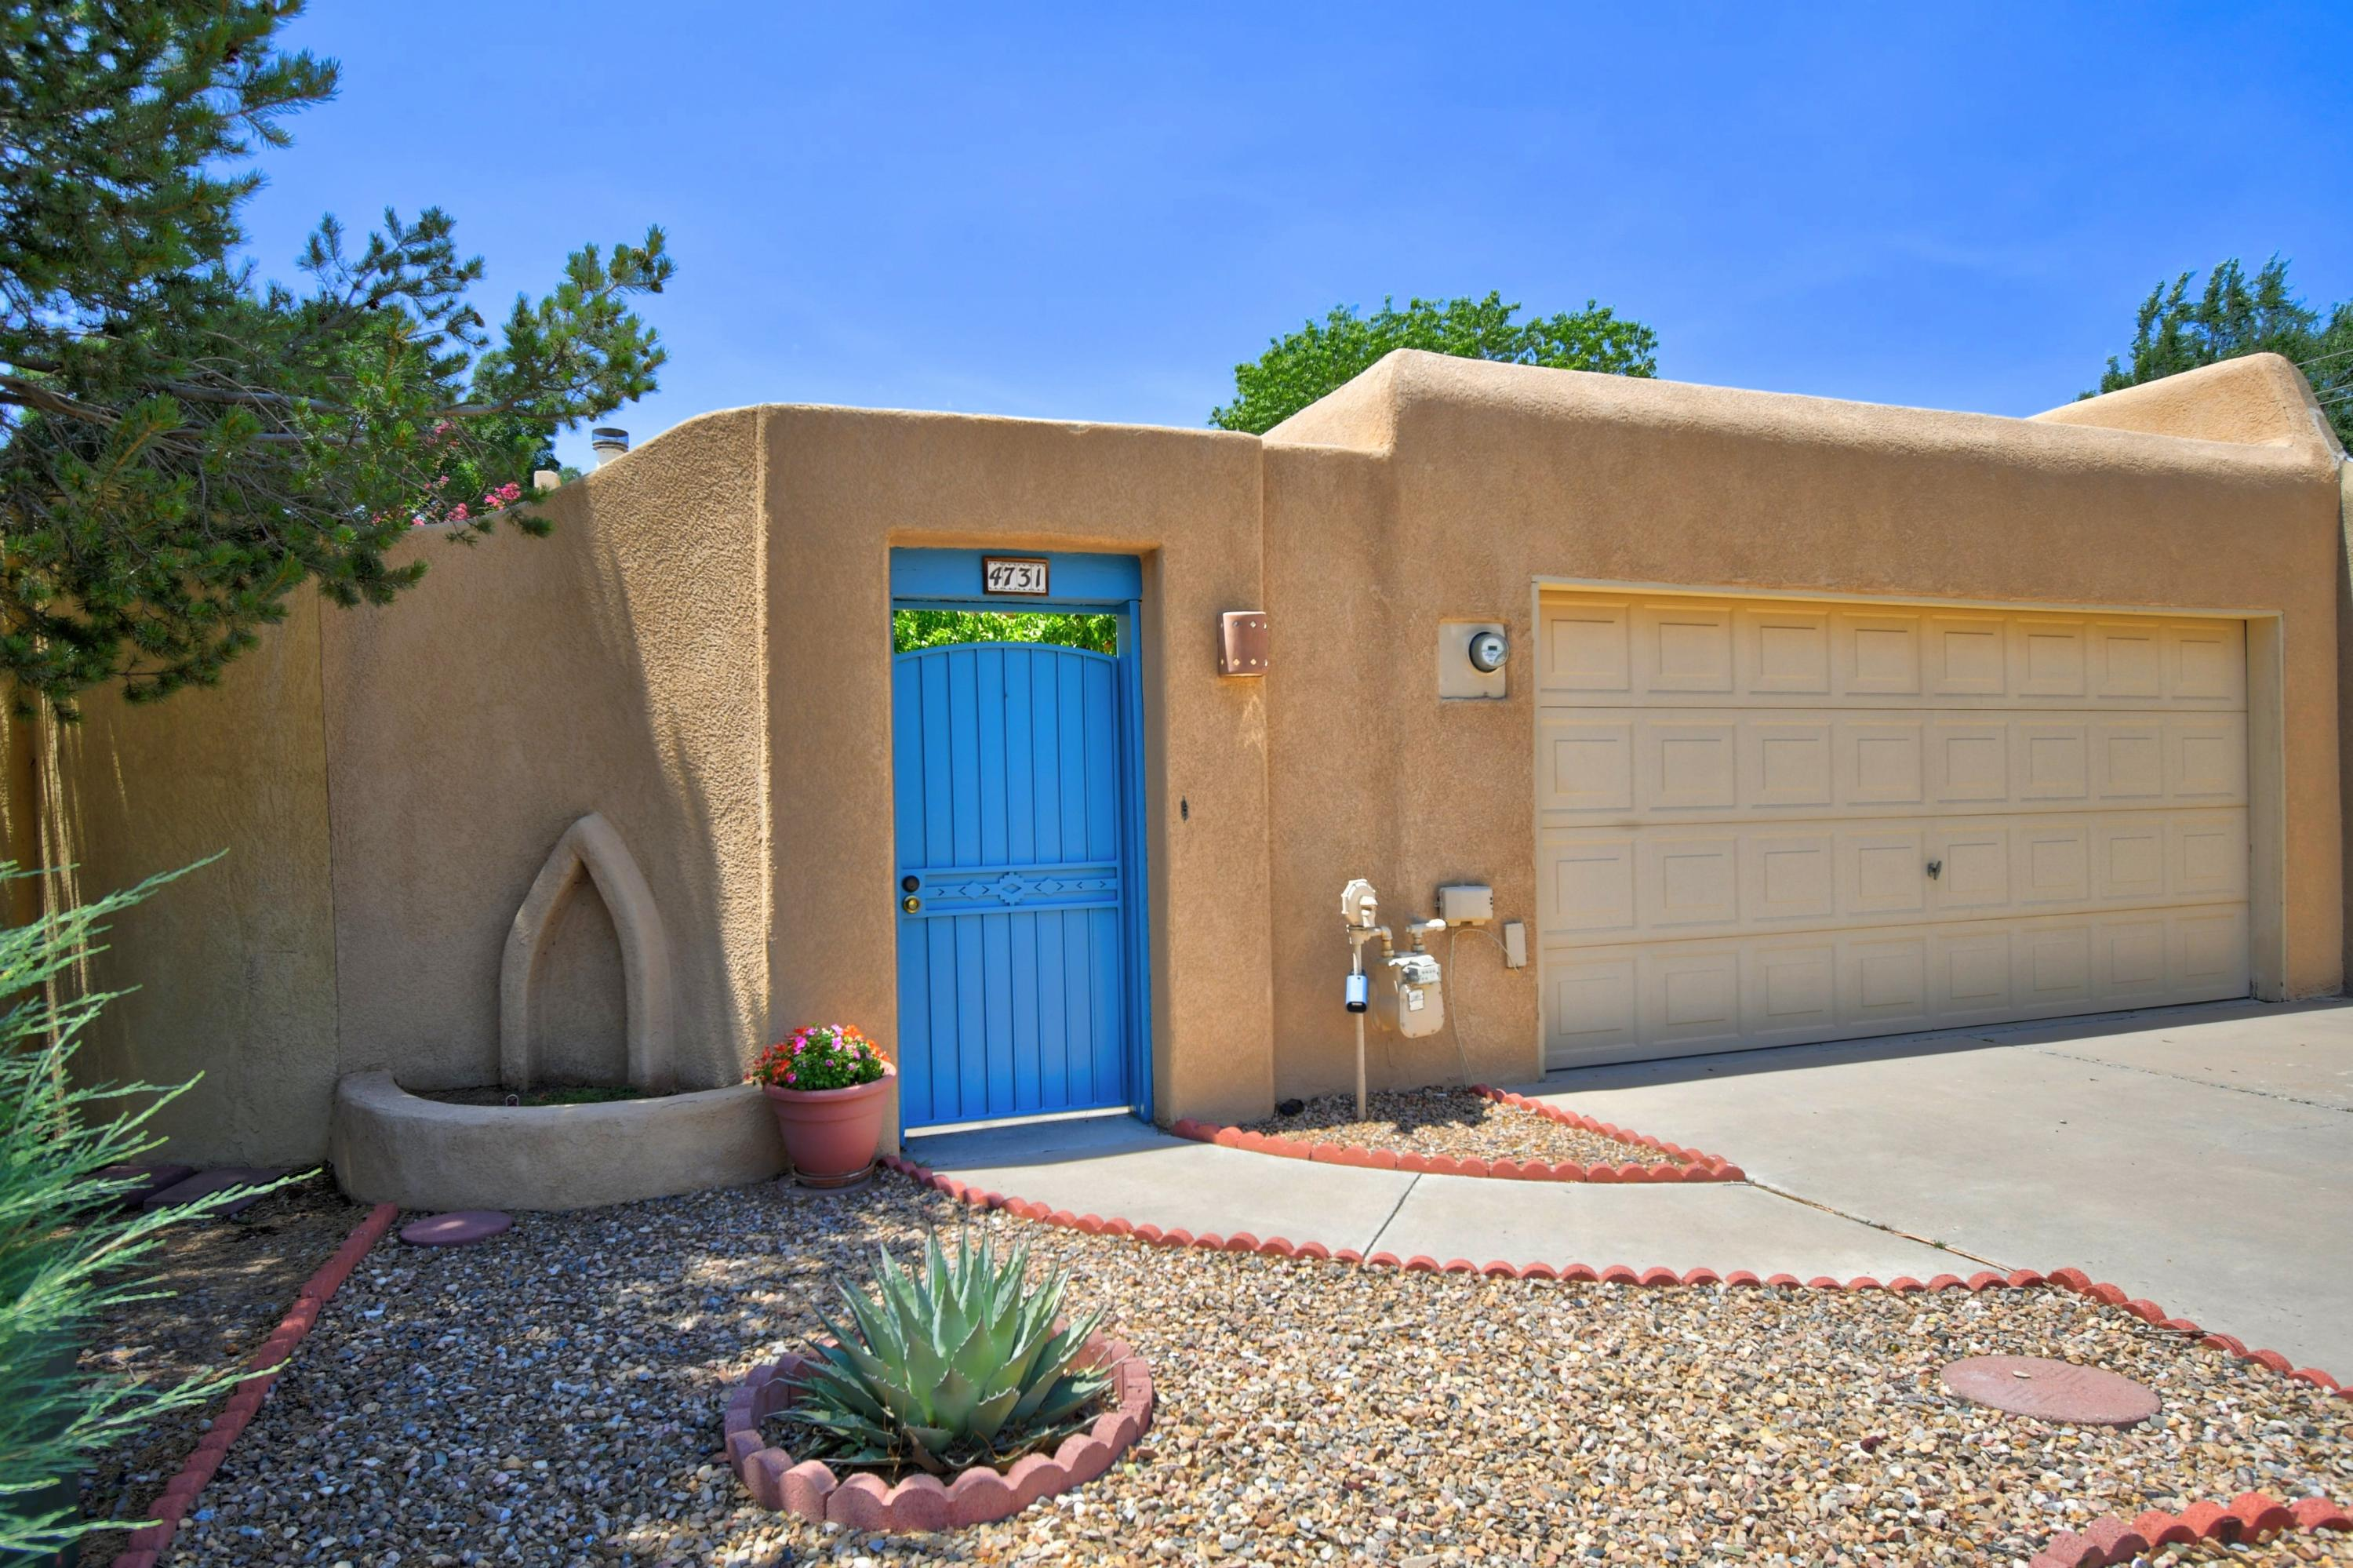 4731 TIERRA ENCANTADA Court NE Property Photo - Albuquerque, NM real estate listing